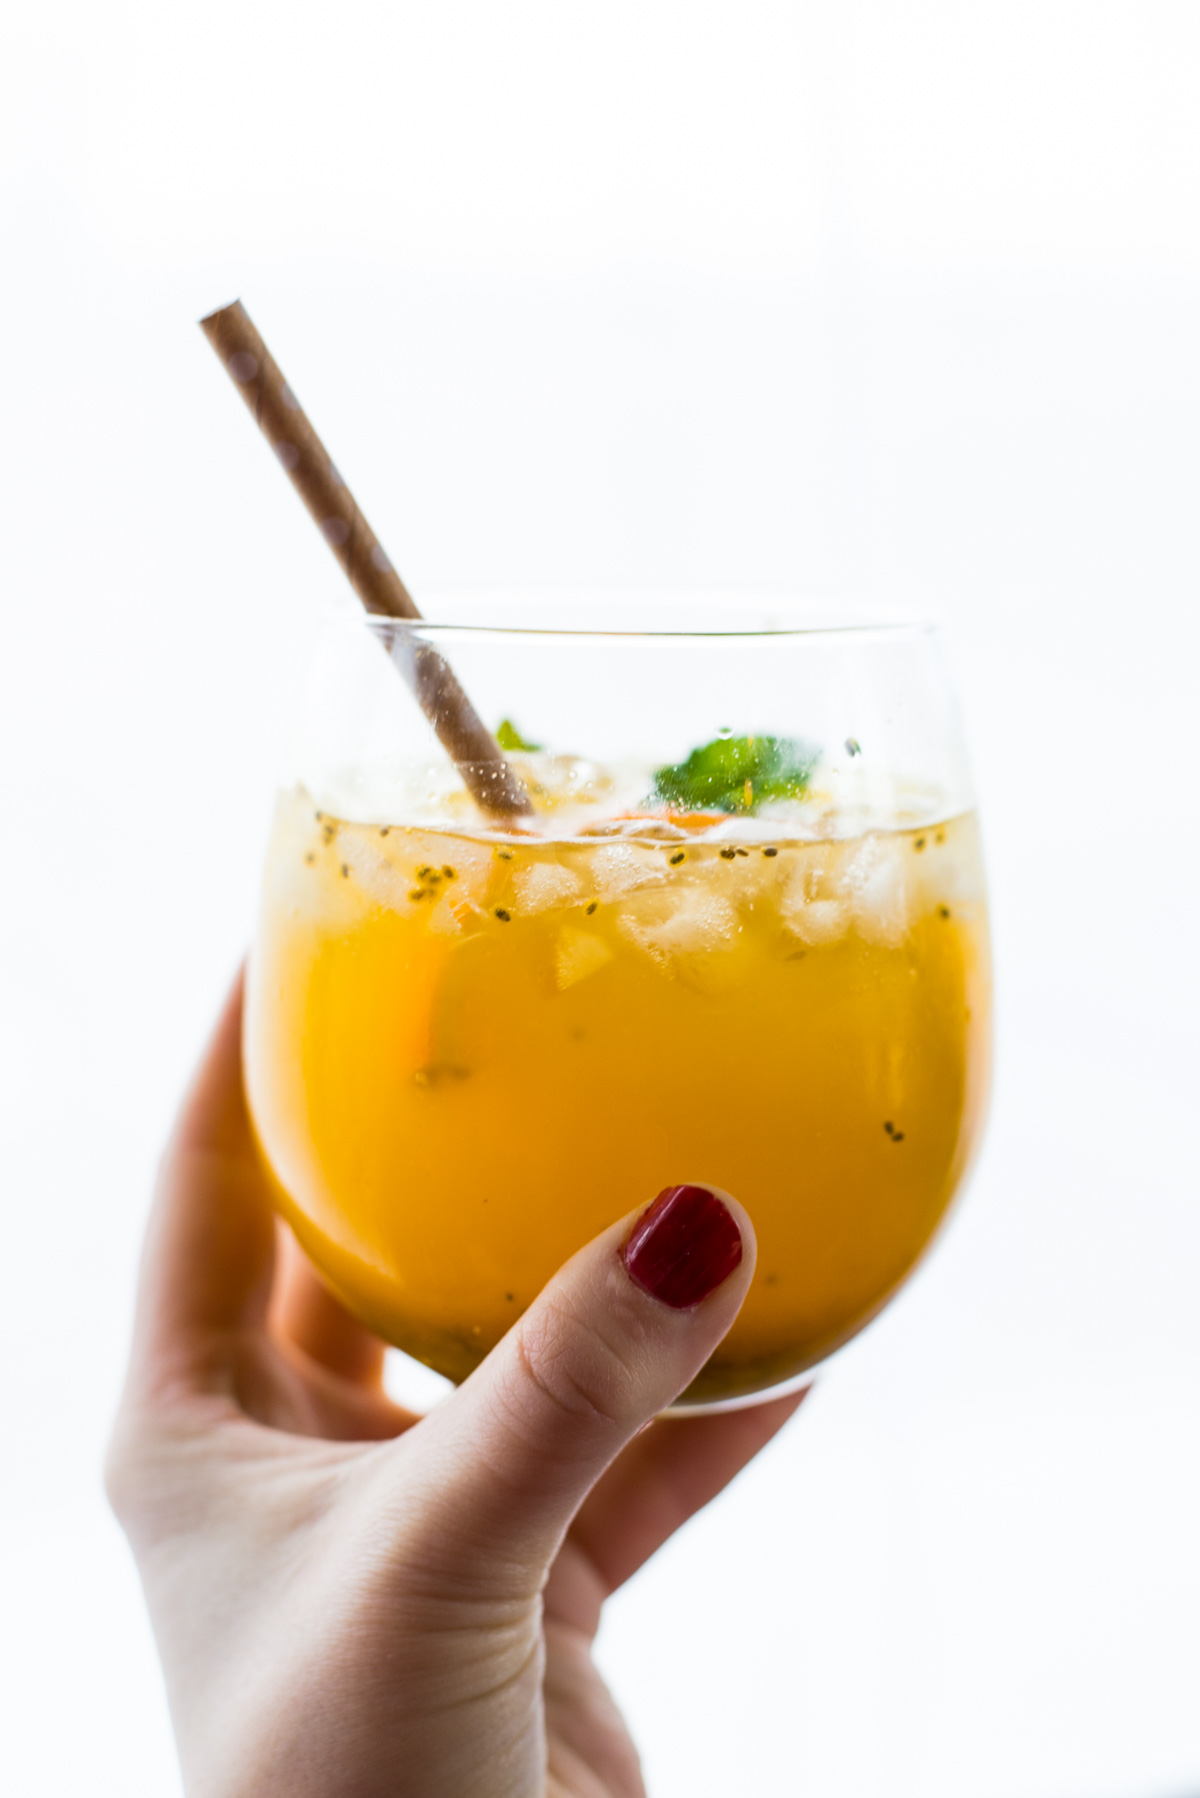 This quick 5-minute refresher has powerful health benefits of turmeric. Check out this refreshing citrus turmeric drink here.